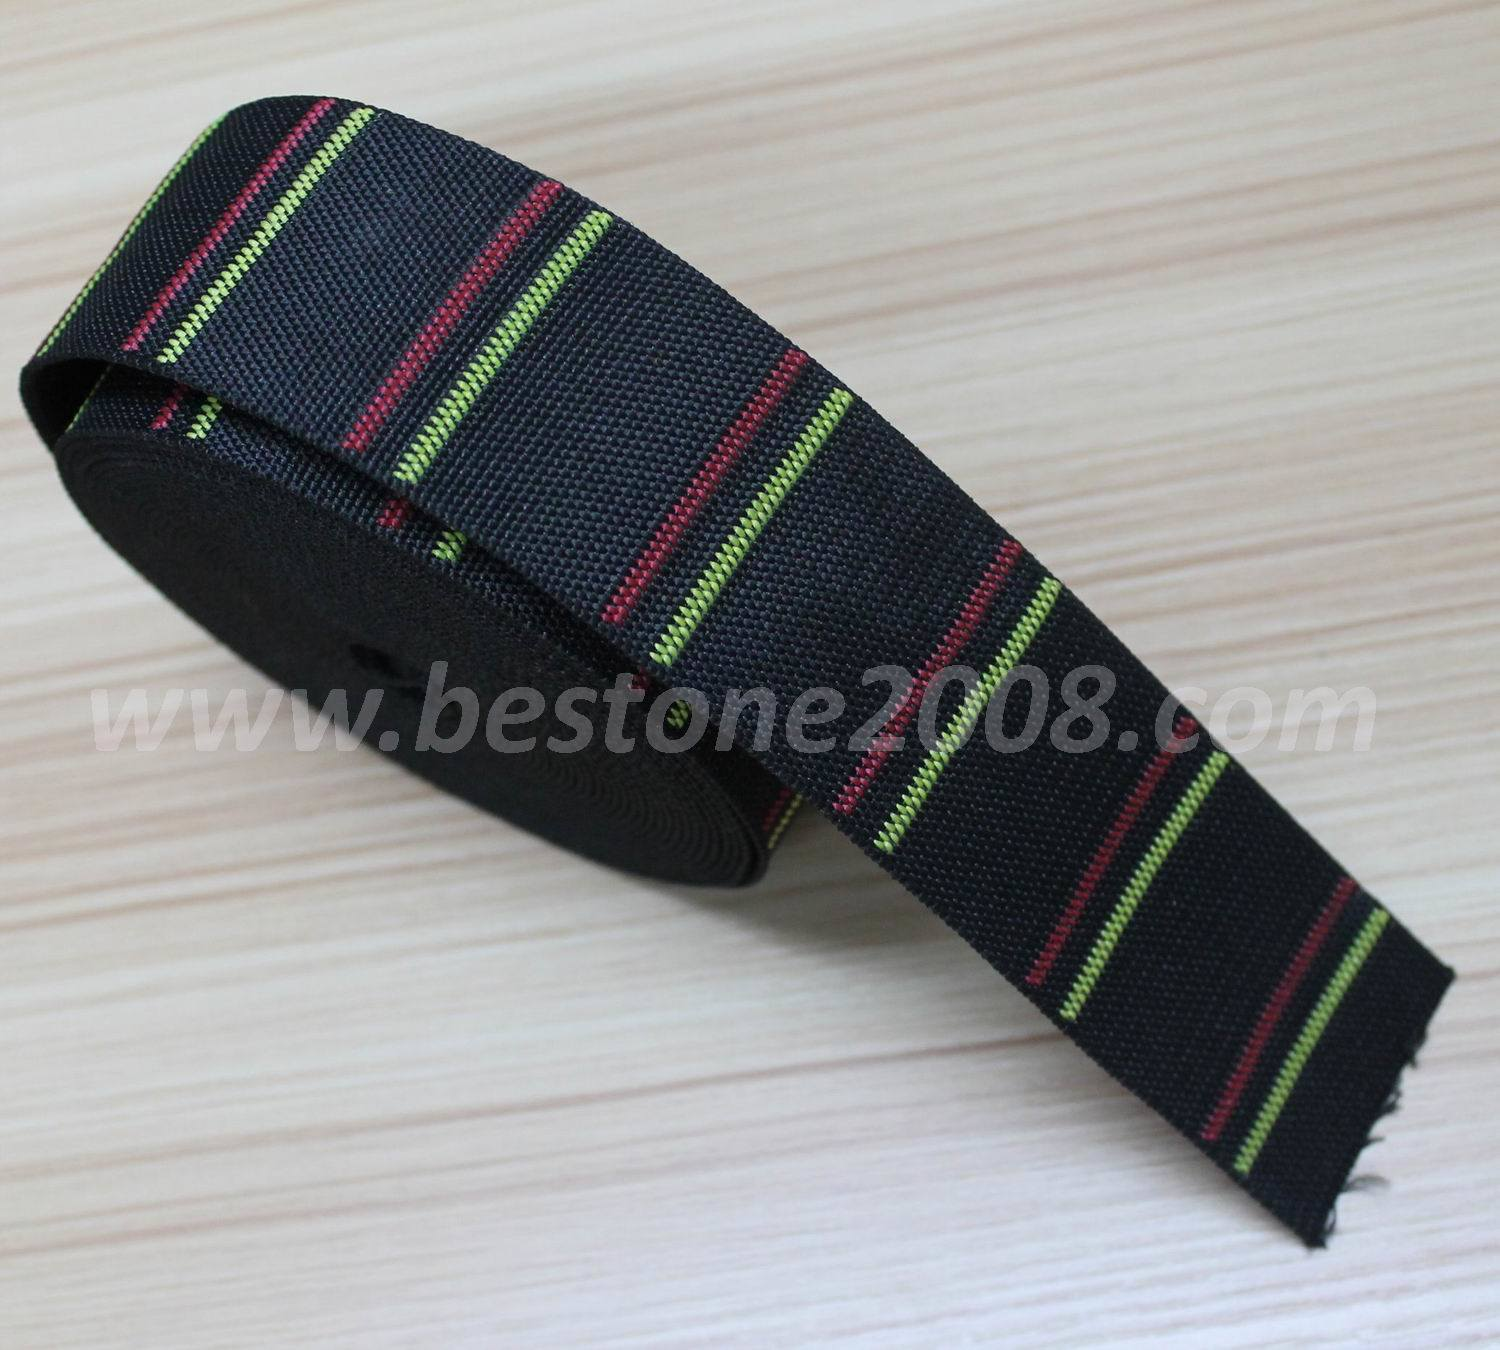 Factory High Quality Jacquard Webbing for Bag Accessories #1312-19